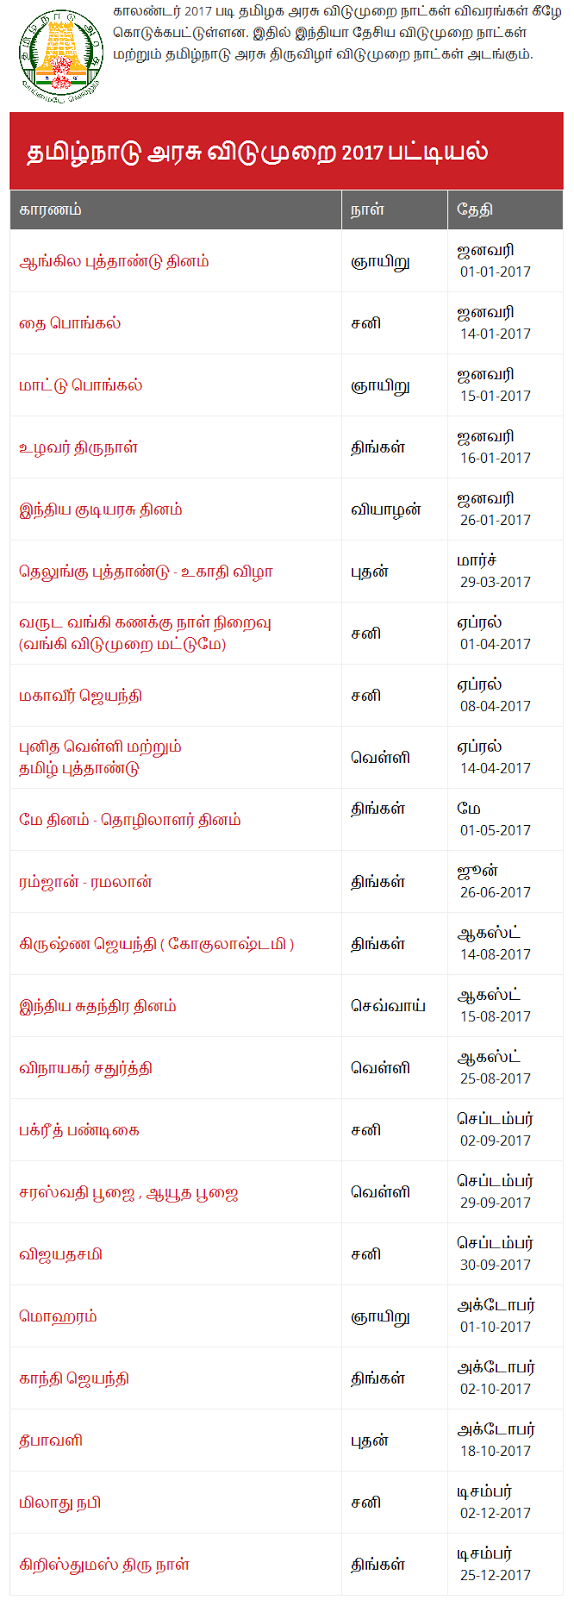 Tamil Nadu Government holidays 2017 List